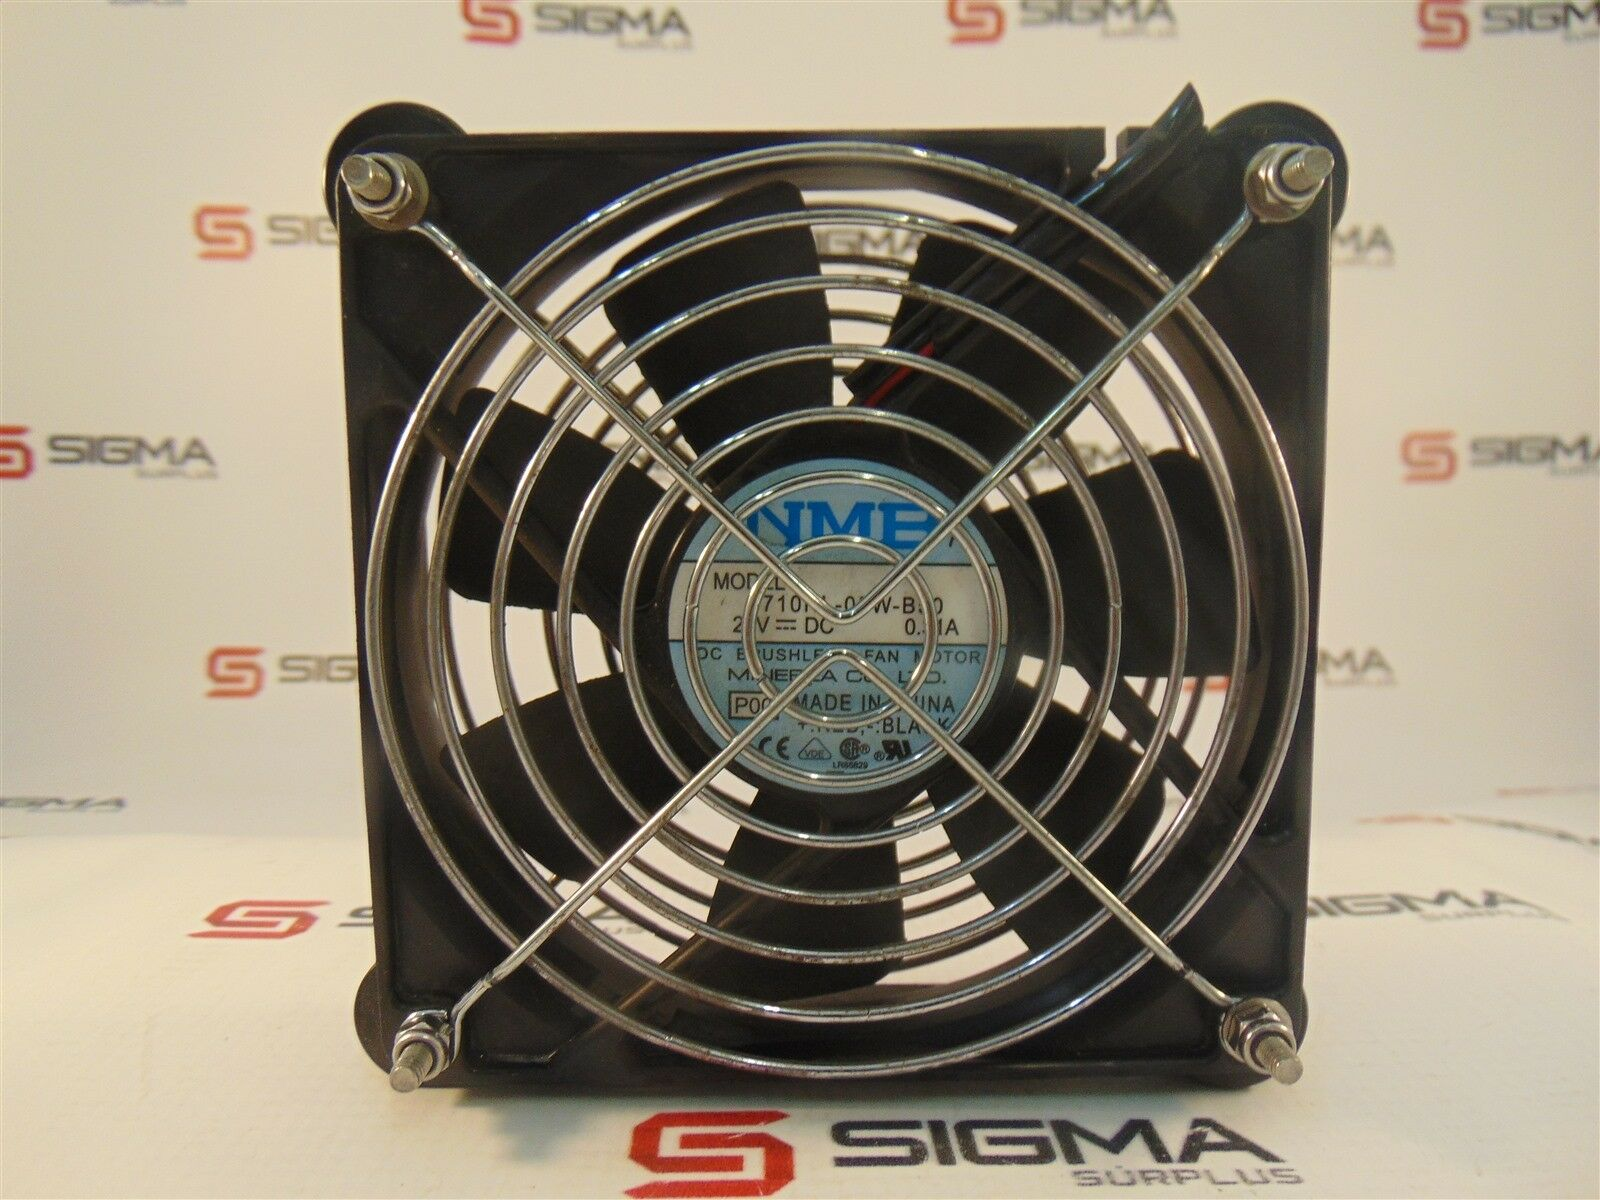 NMB 4710NL-05W-B50 Brushless Cooling Fan 24VDC 0.31A